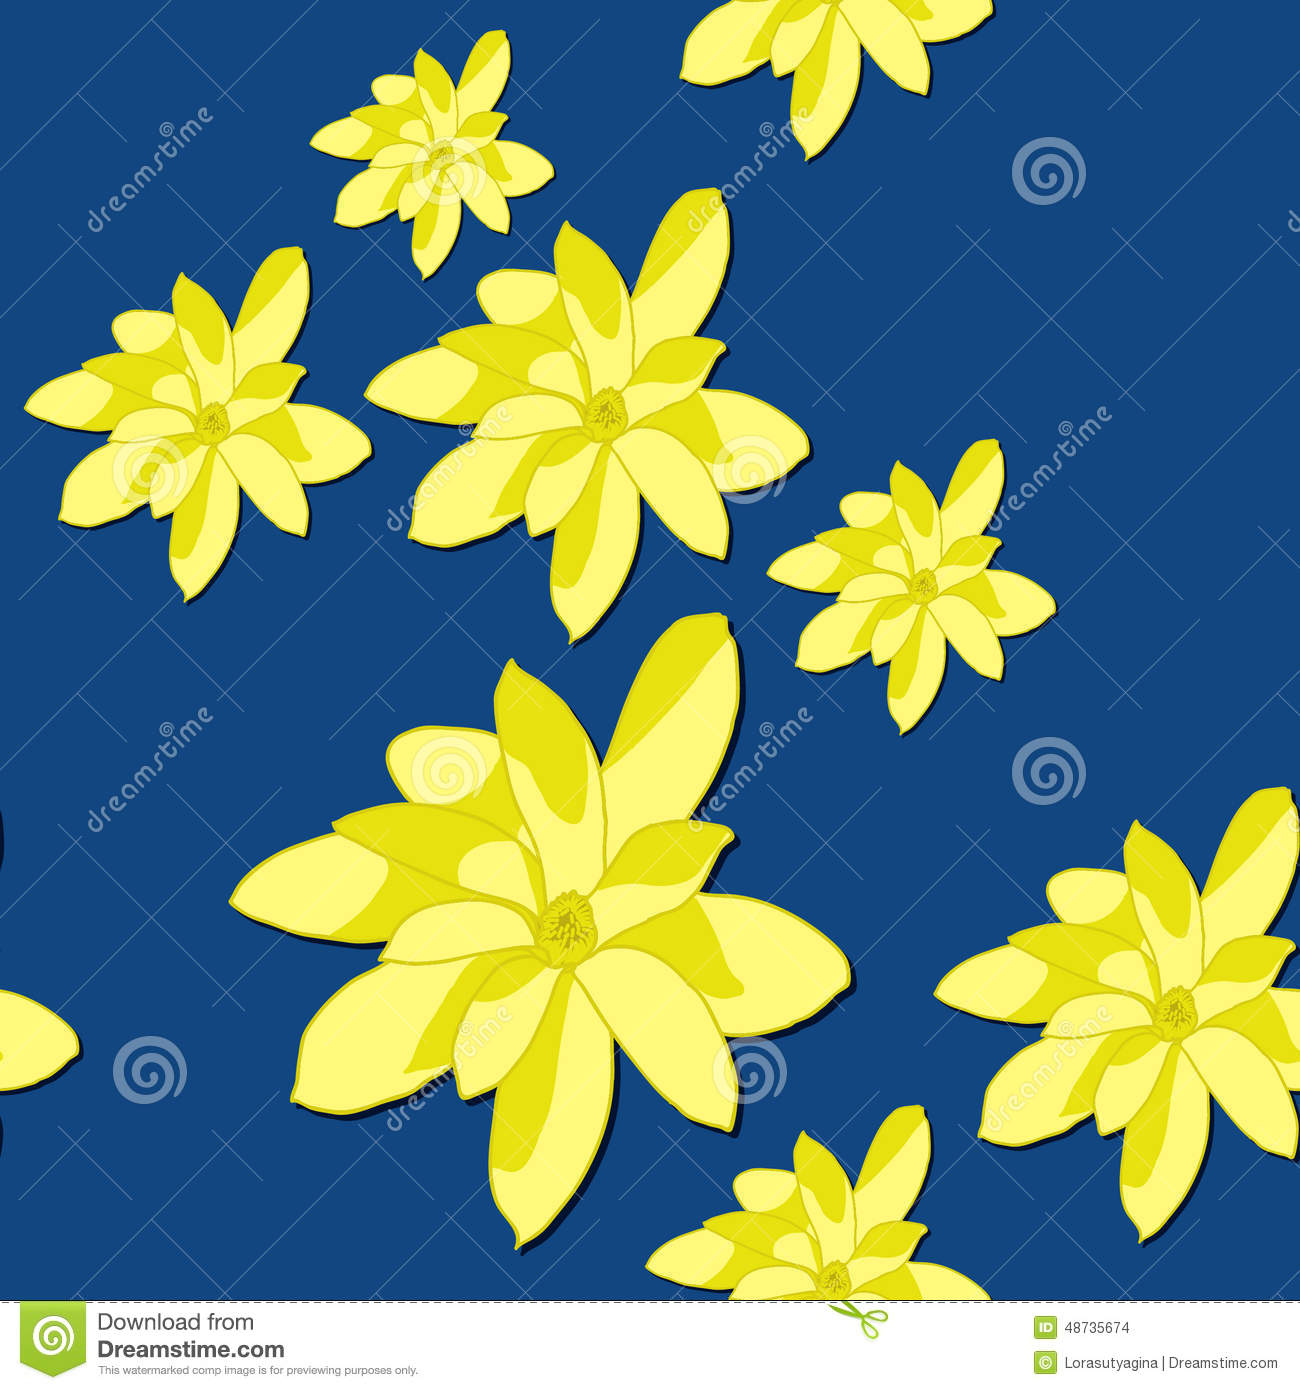 yellow magnolia wallpaper - photo #38